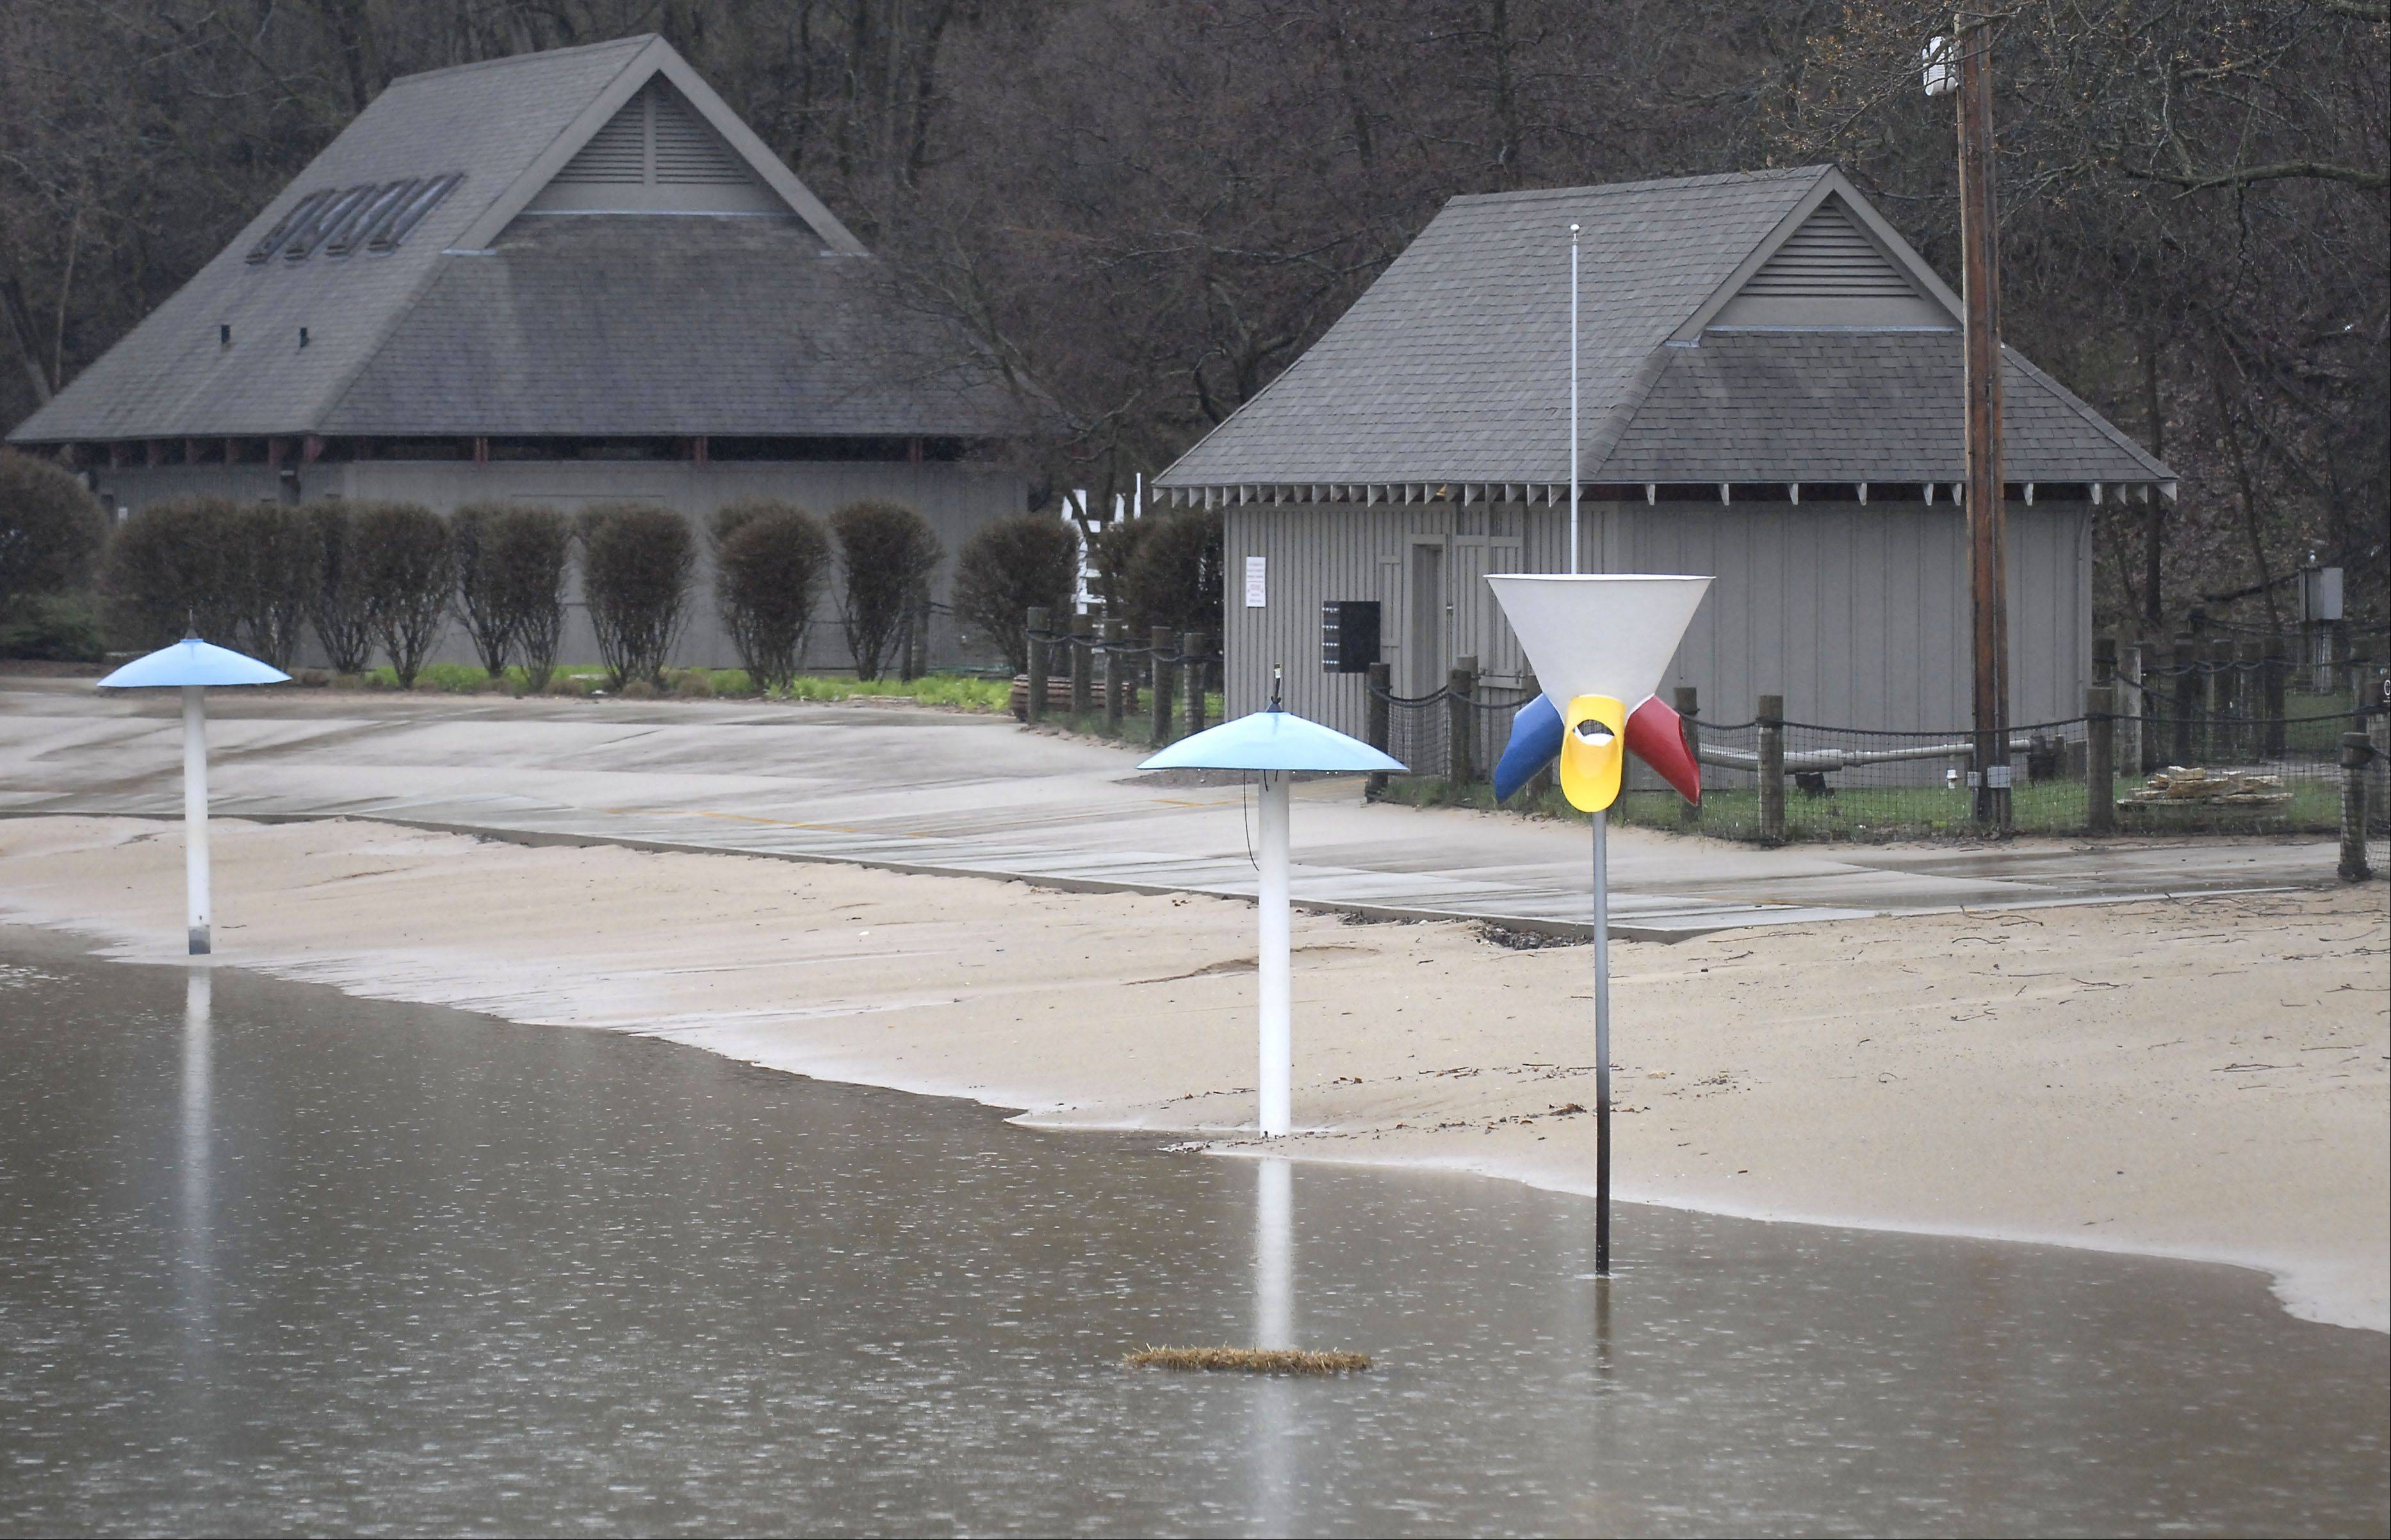 Batavia's Harold Hall Quarry Beach is filled with rain water Tuesday, stalling preparation to open for the summer season.